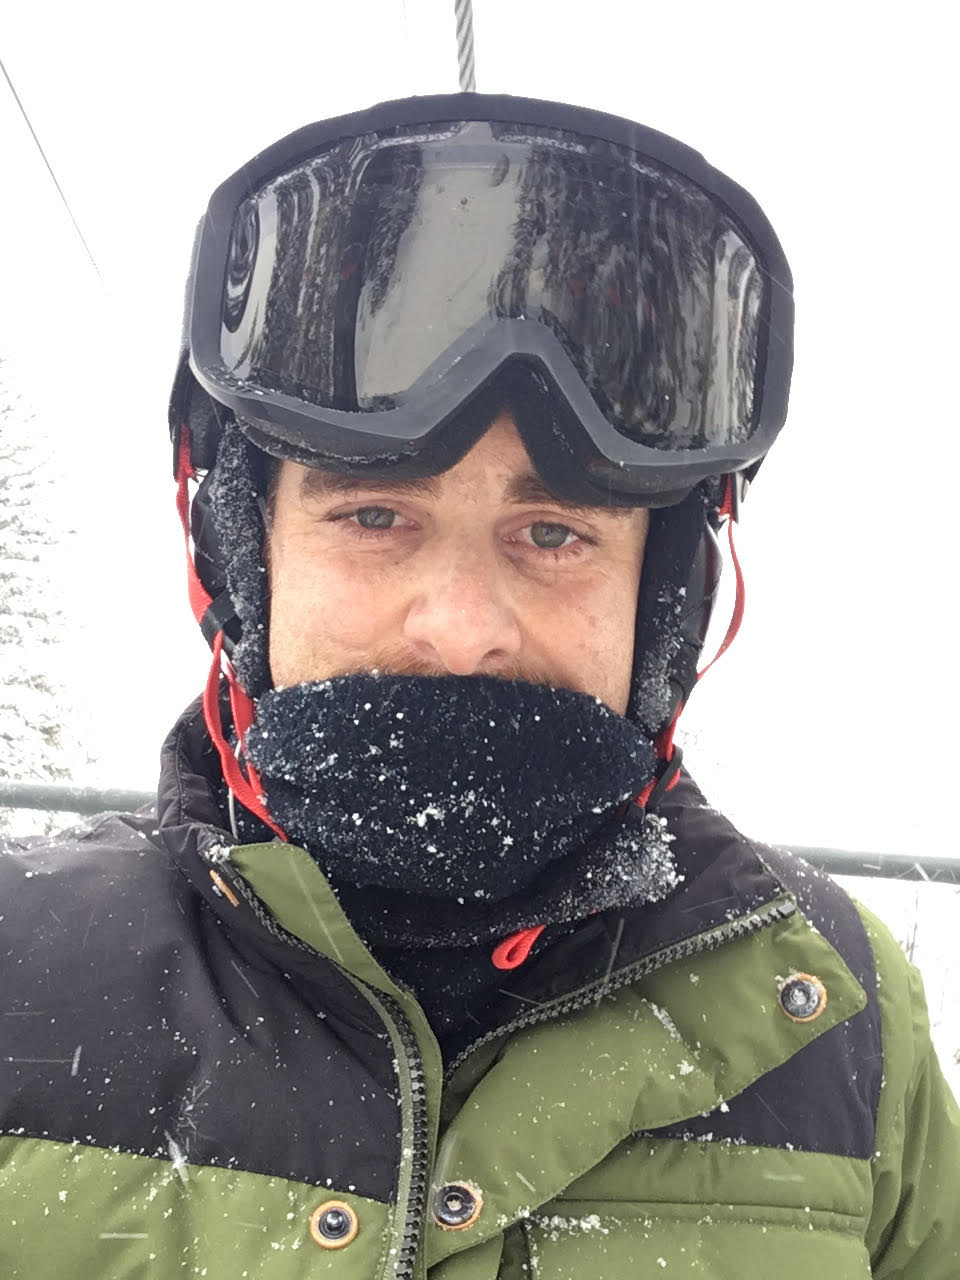 Winter Park Snowboarding trip before my most stressful 6 hours of the trip (getting off the mountain in a snowstorm)